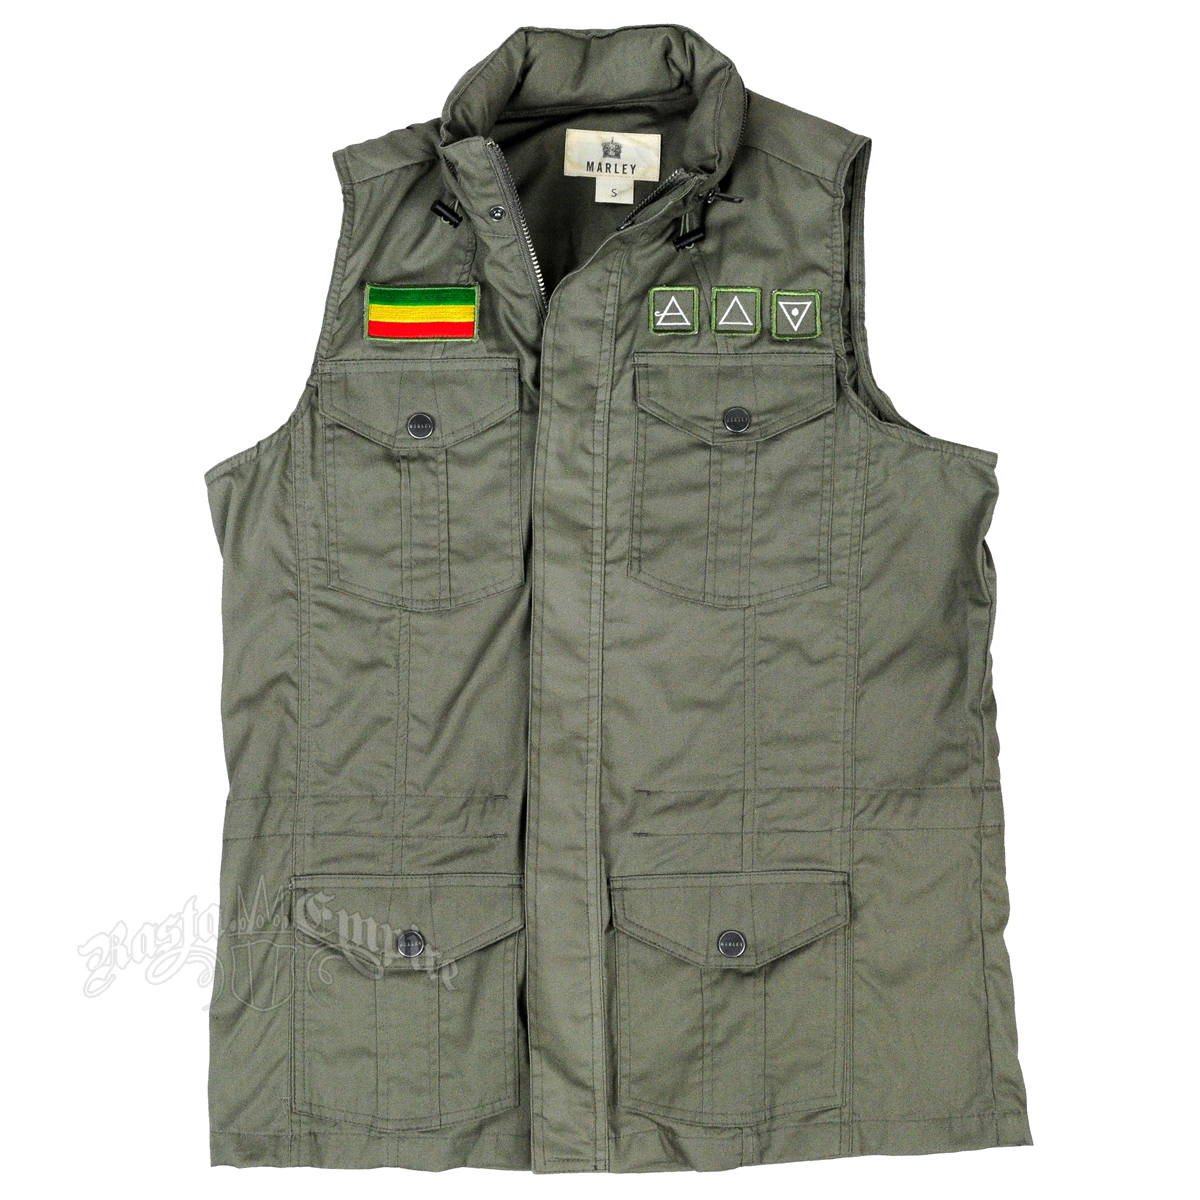 Military Tanks For Sale >> Marley Dusty Olive Military Vest - Men's at RastaEmpire.com